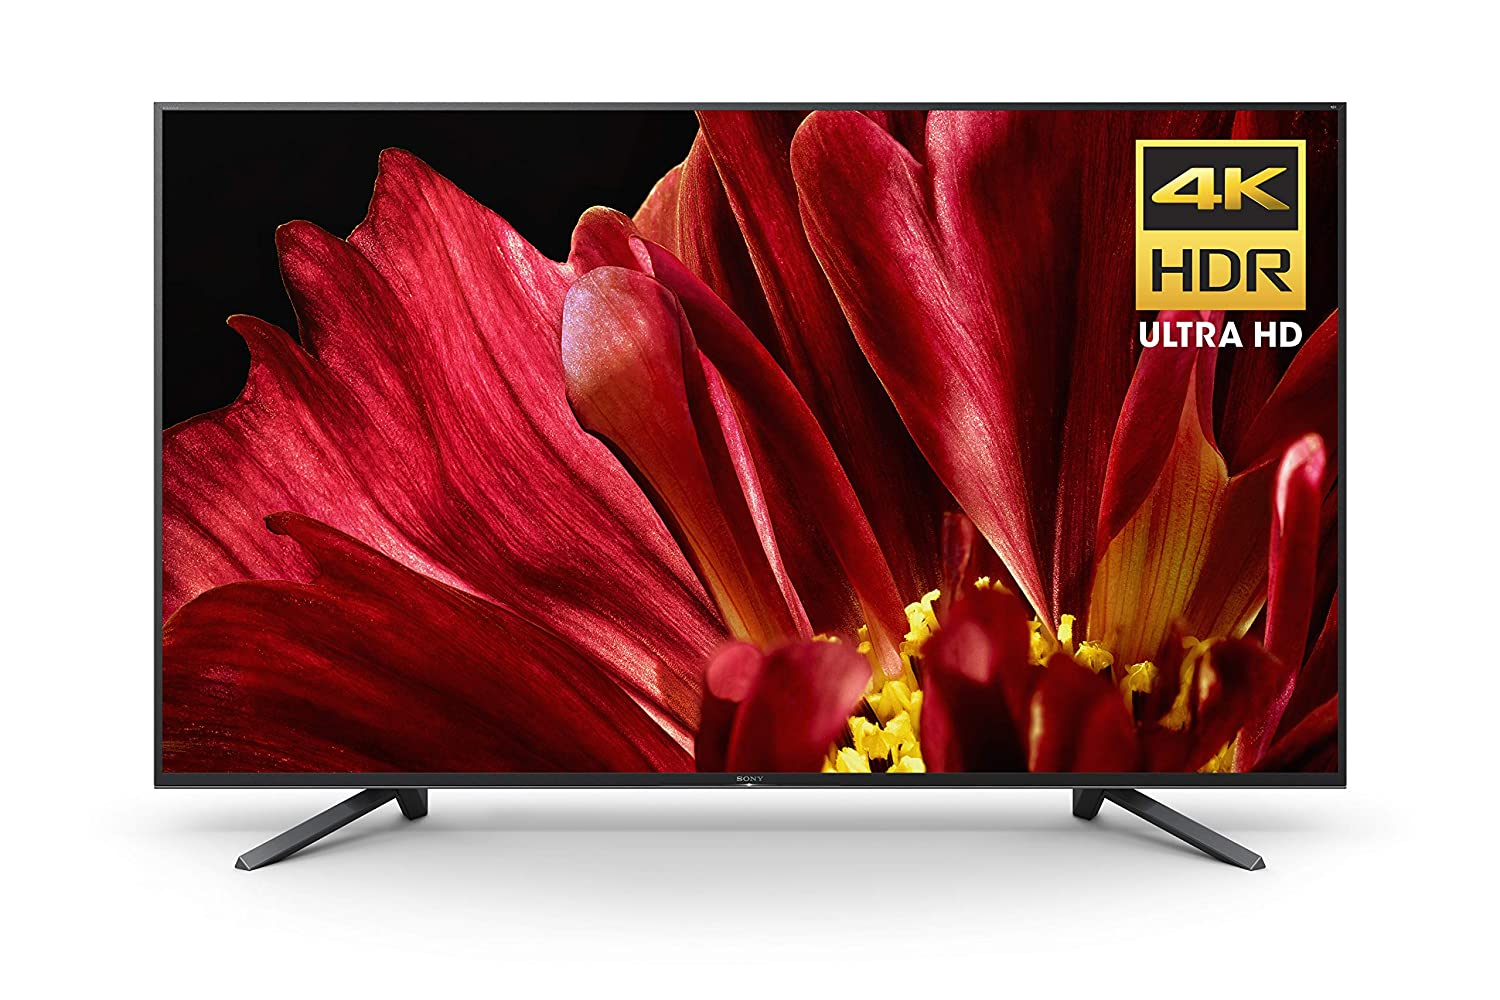 Sony XBR75Z9F 75-Inch 4K Ultra HD Smart BRAVIA LED TV (2018 Model)